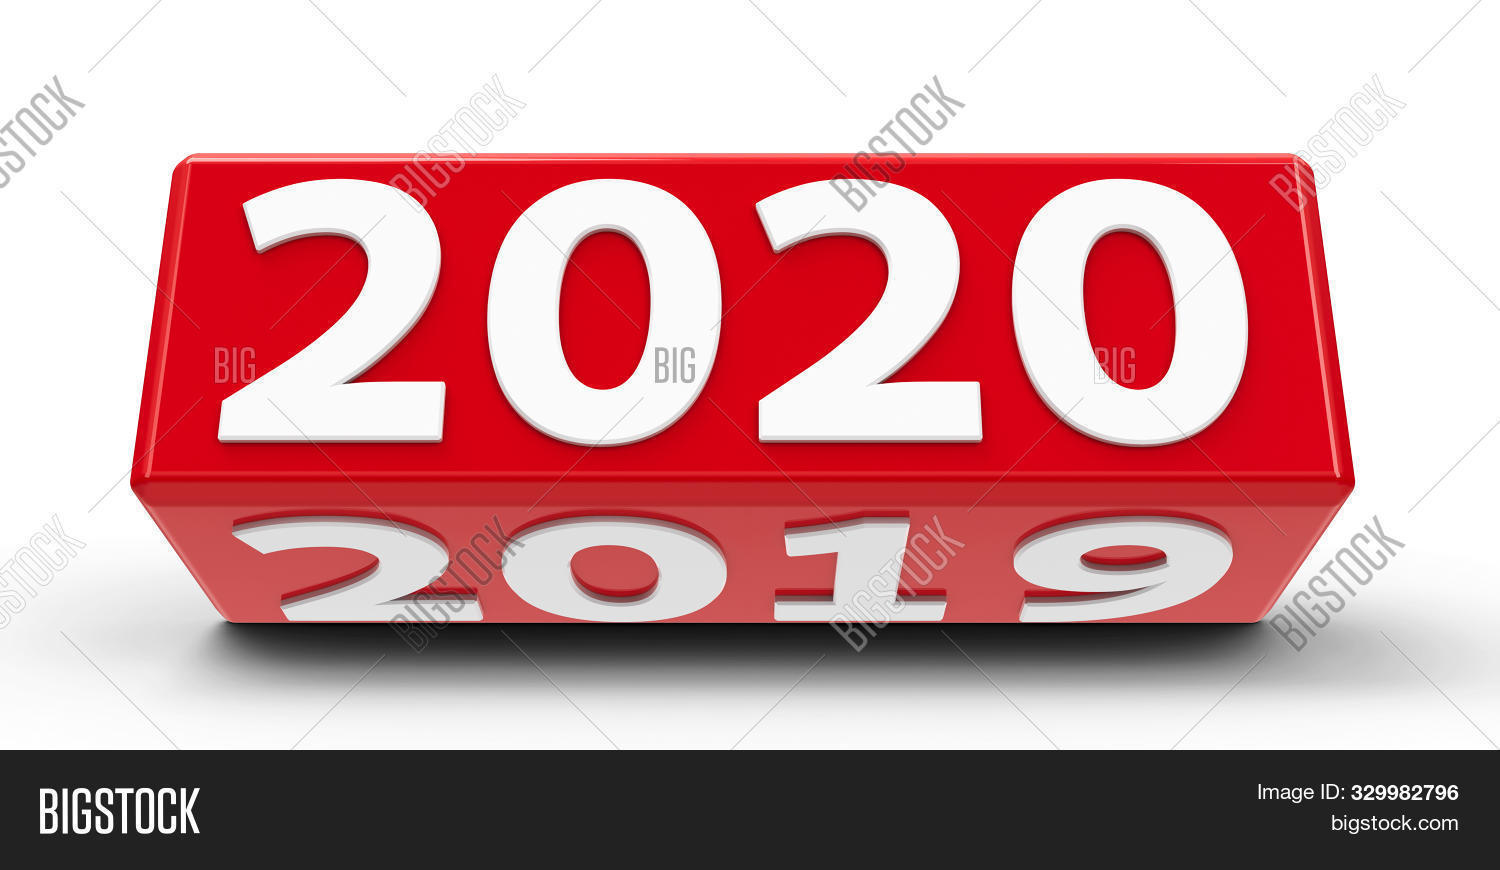 2019,2020,3d,box,brilliance,business,calendar,change,christmas,colors,concept,cube,cuboid,date,dimensional,end,eve,event,exchange,figure,future,greeting,happy,holiday,illustration,increase,invitation,isolated,merry,new,newyear,number,numeral,party,planning,presentation,prism,rectangular,red,render,shape,shiny,sign,start,symbol,turn,white,winter,xmas,year